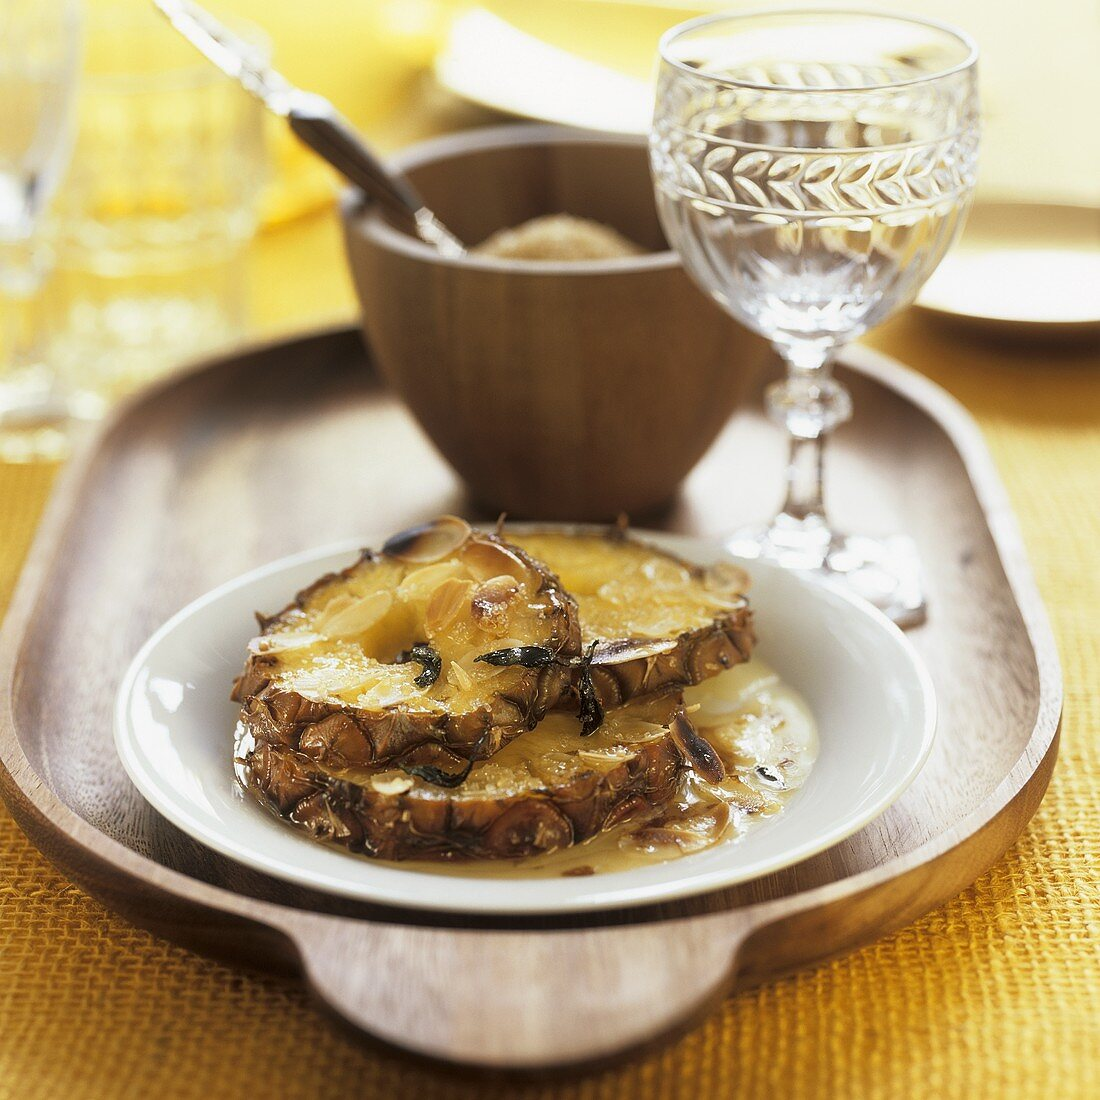 Grilled pineapple slices with honey and almonds